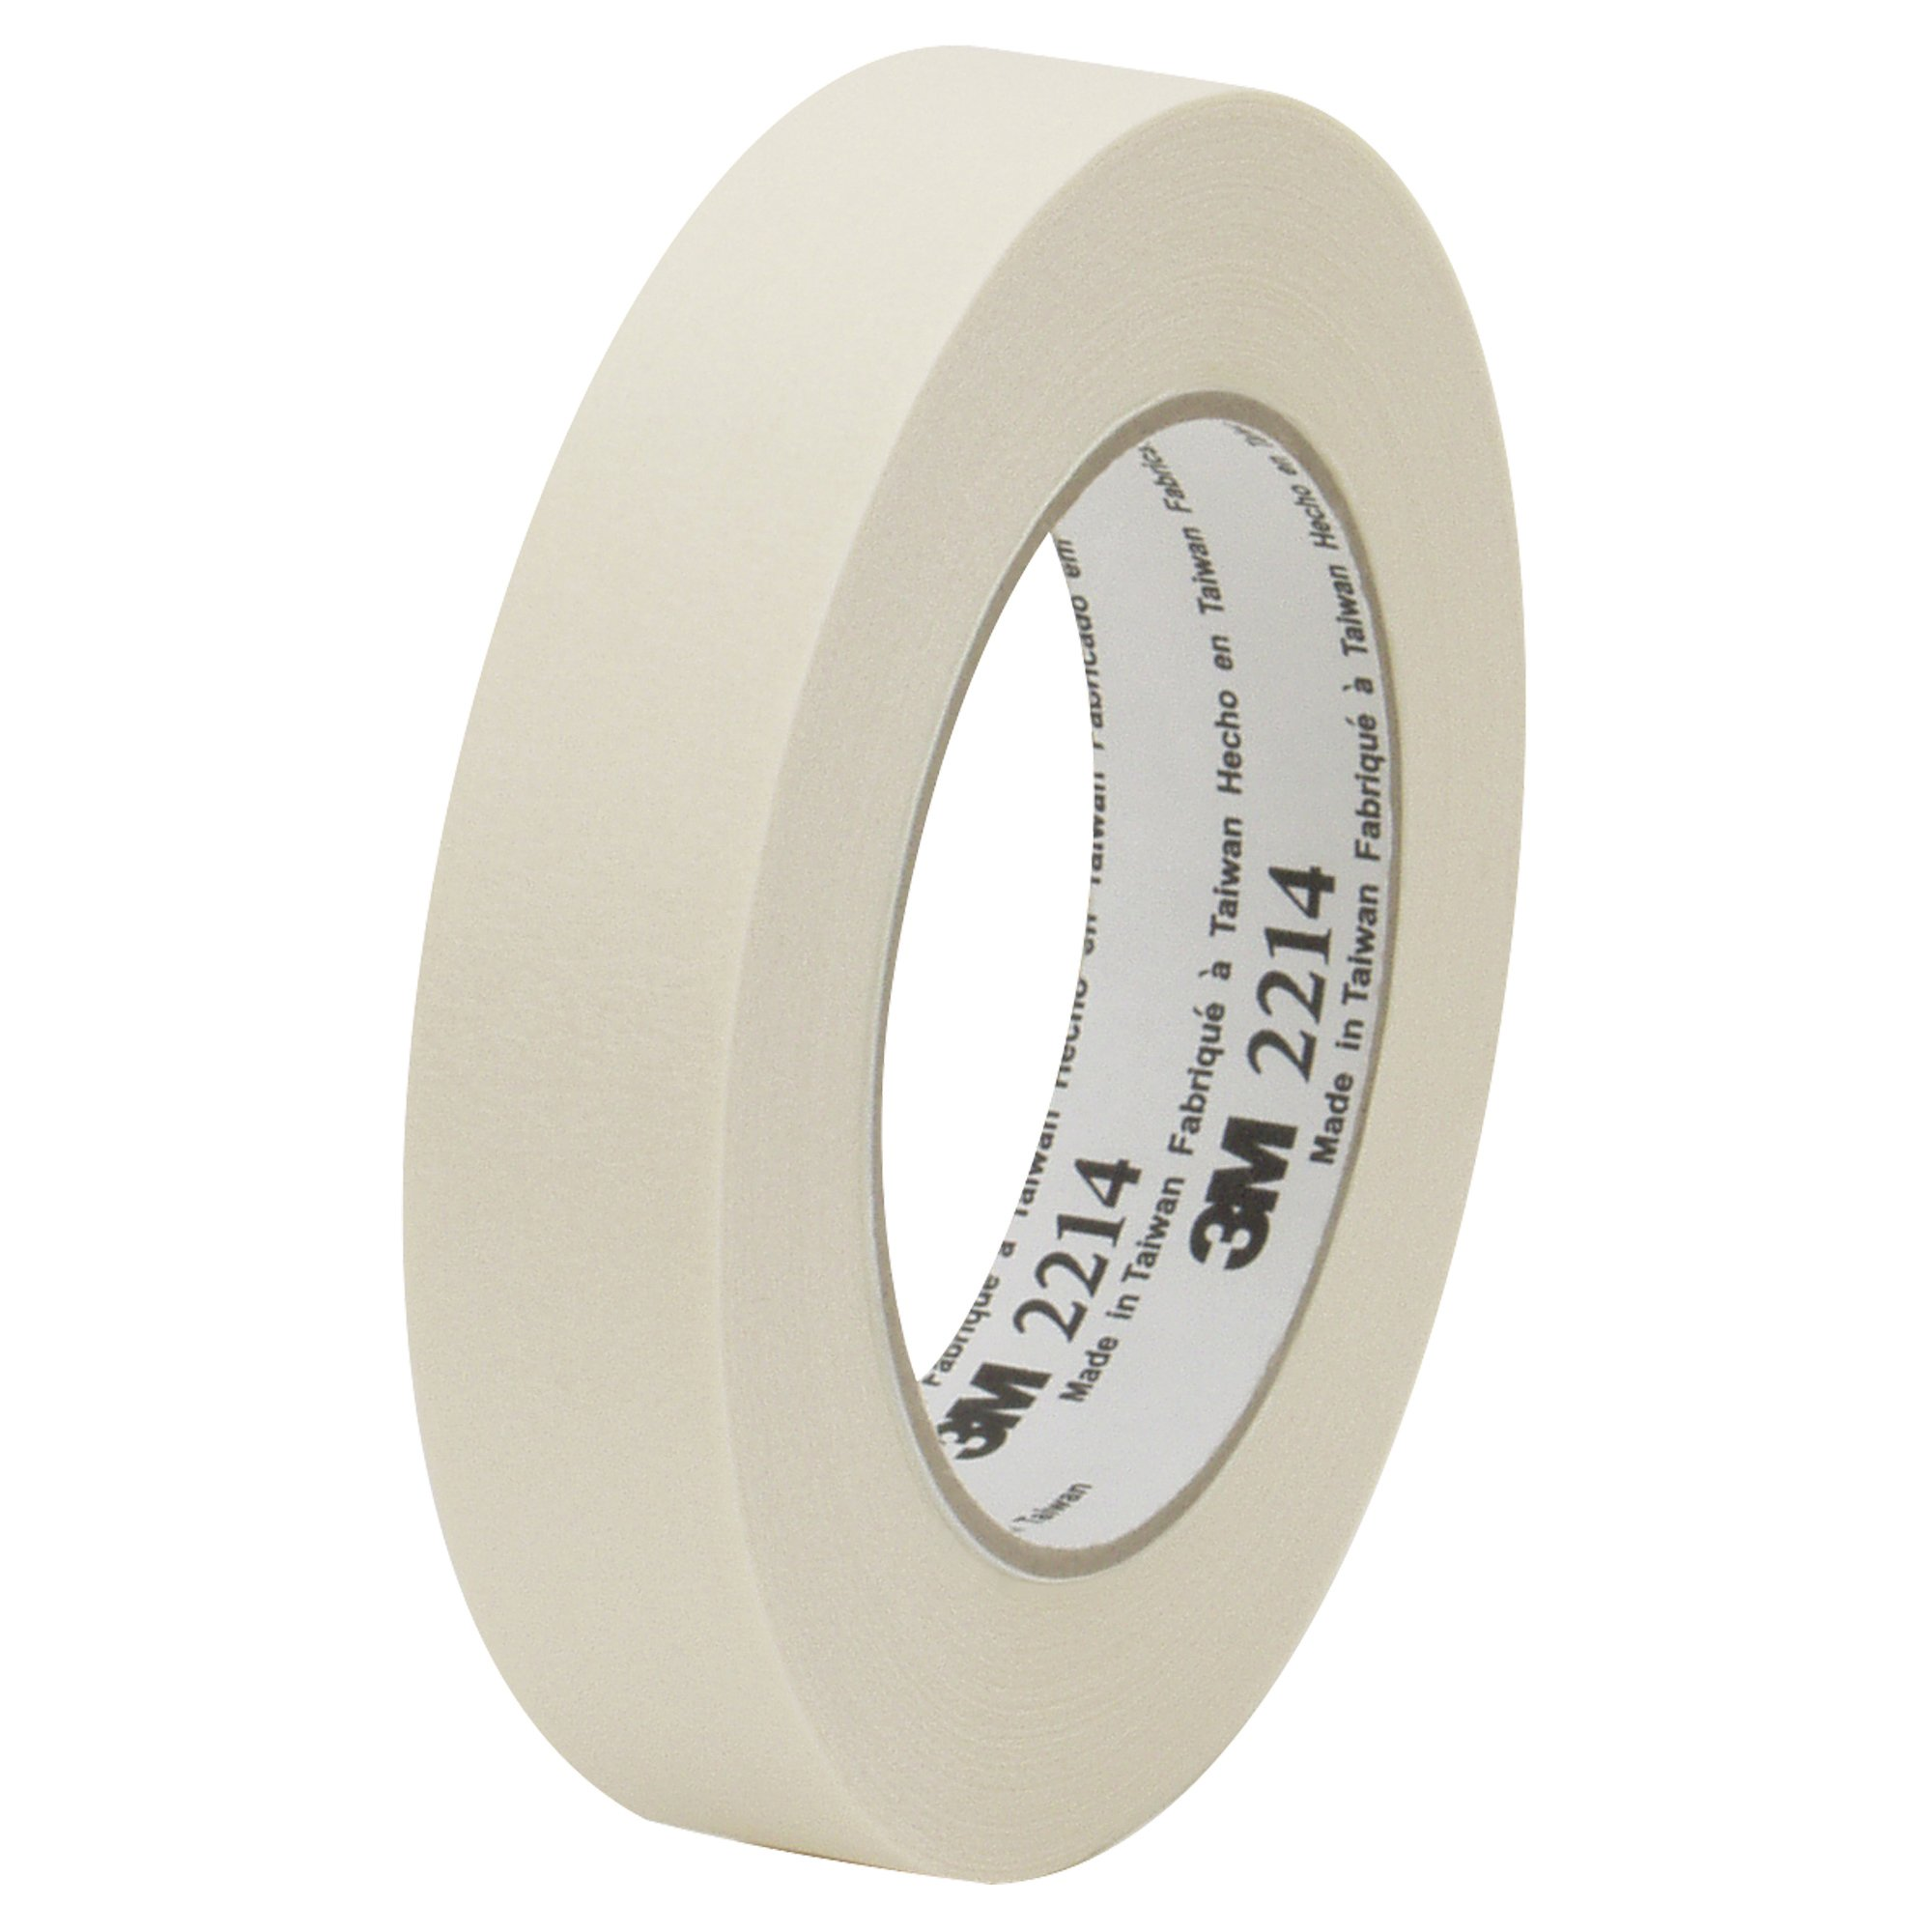 Top Pack Supply 3M 2214 Masking Tape, 5.2 Mil, 2'' x 60 yds. Natural (Case of 12)